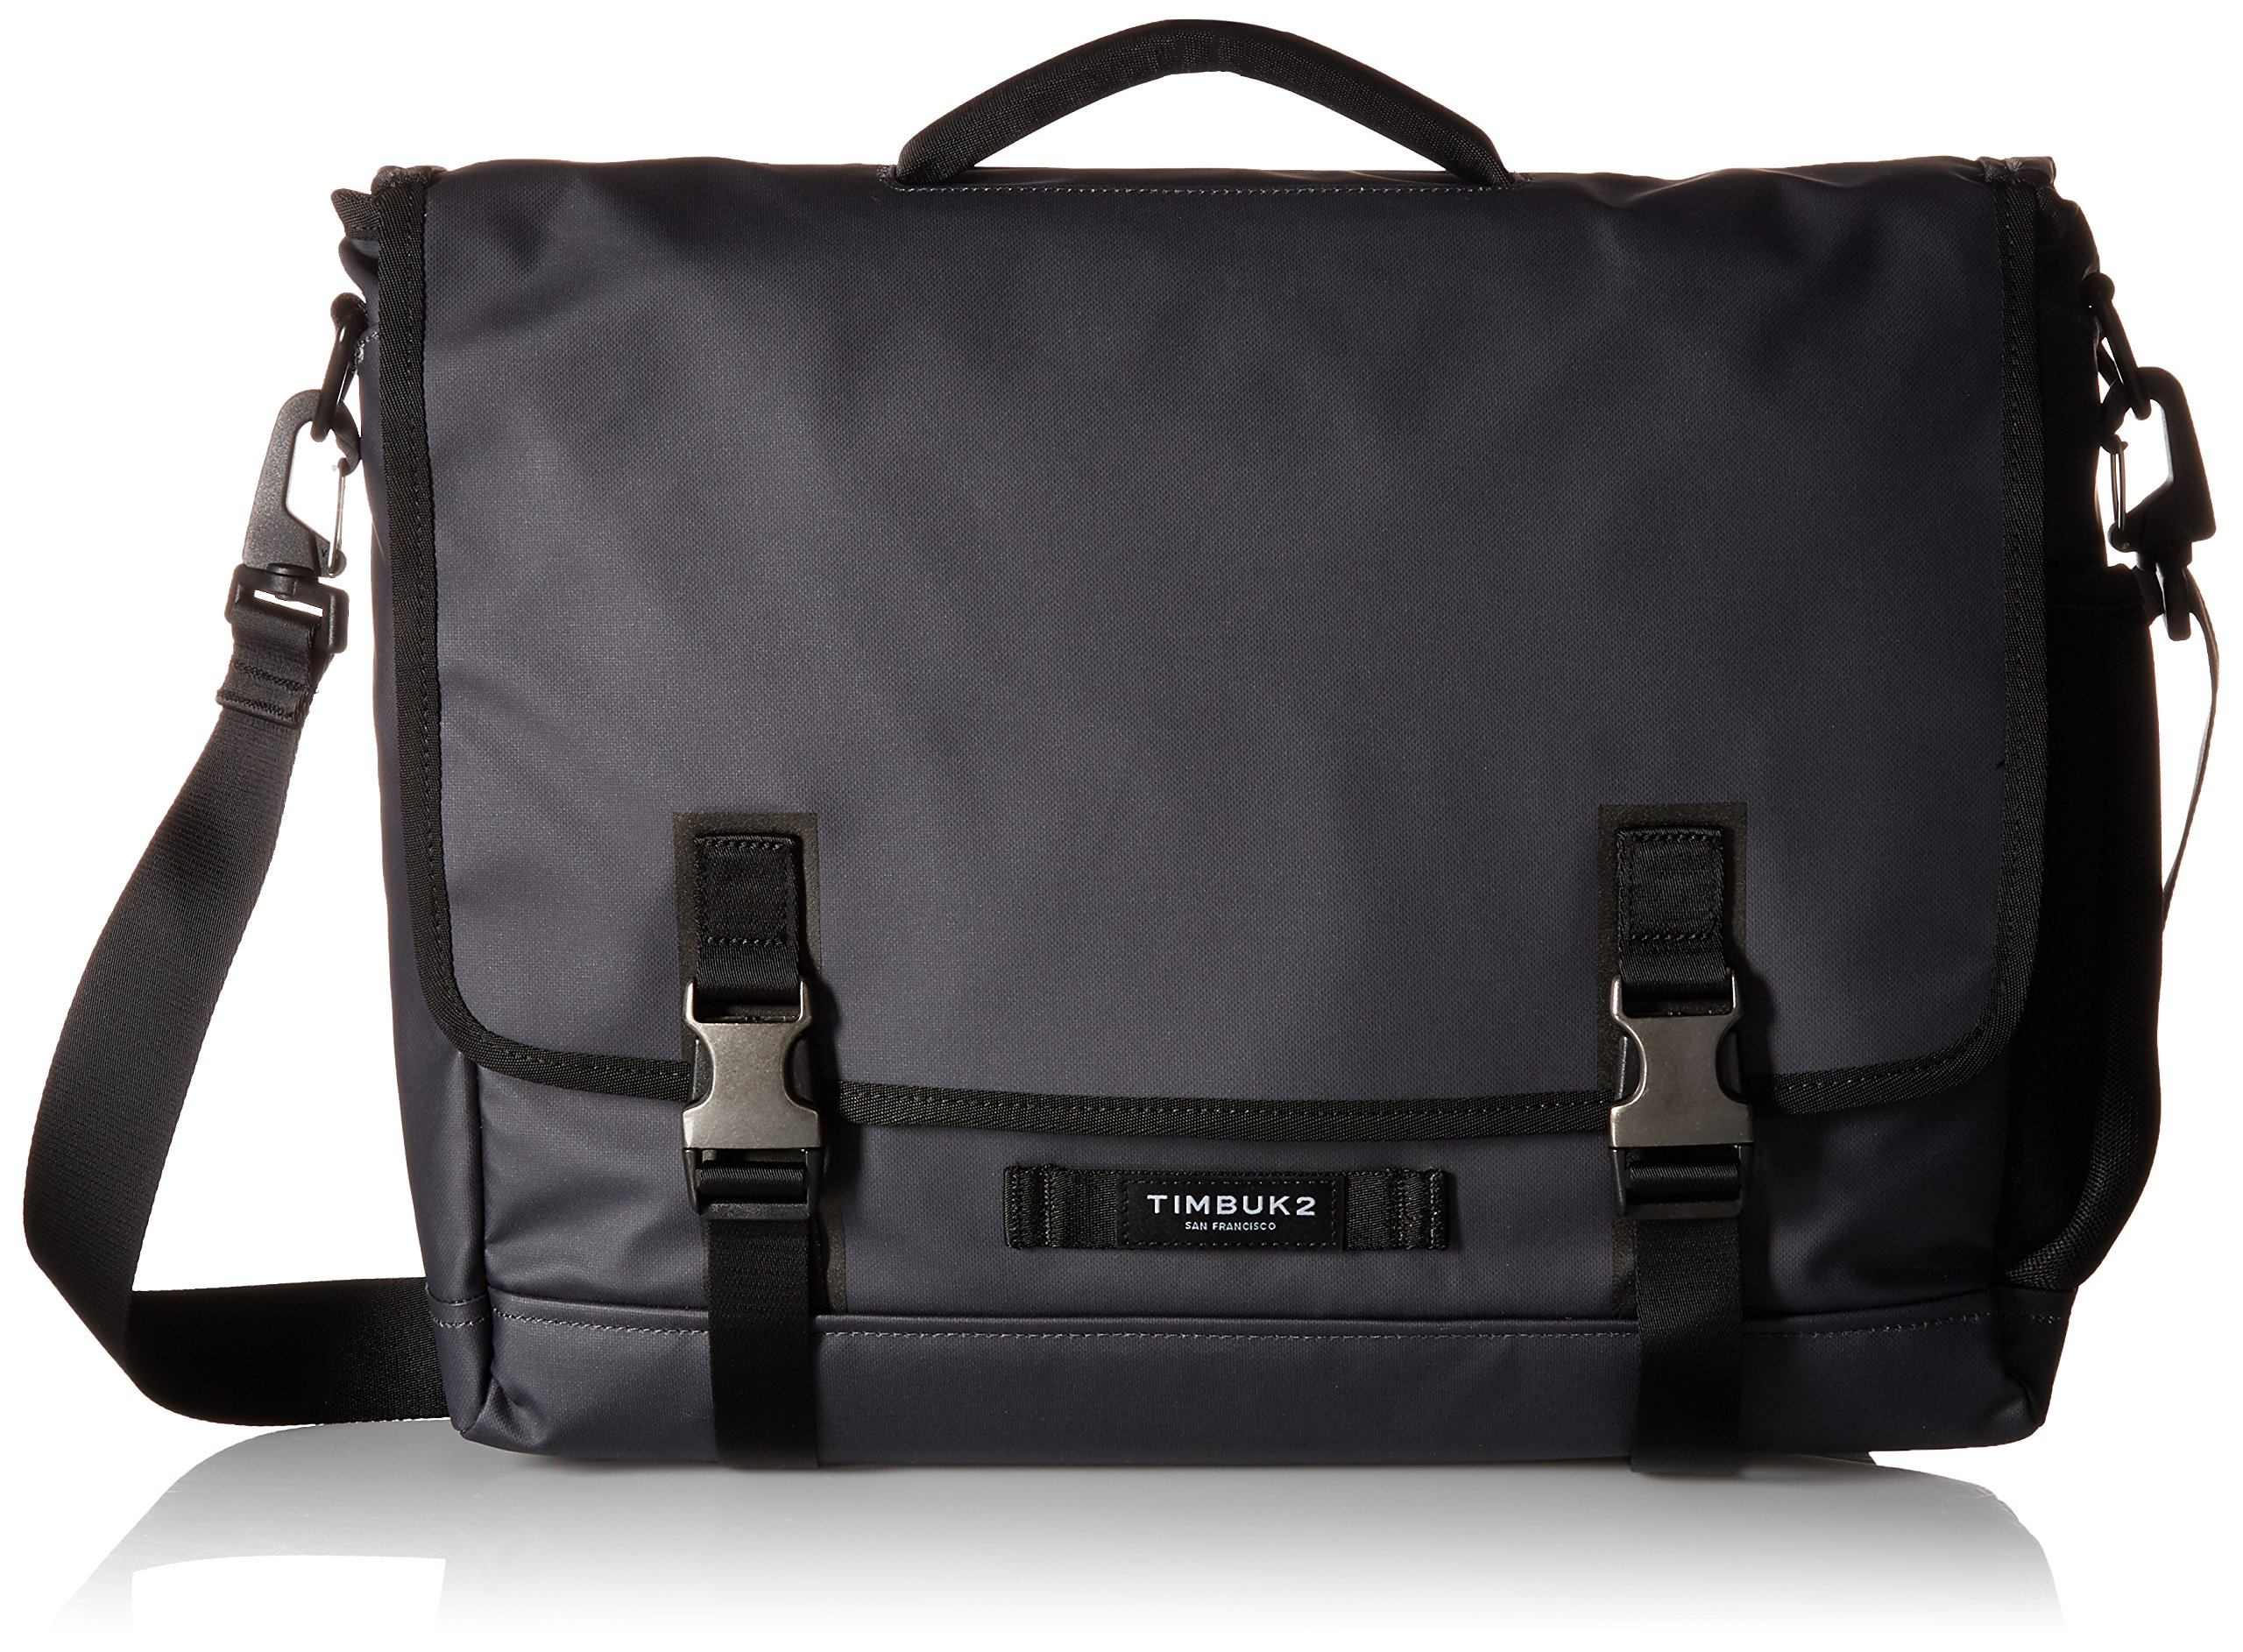 Timbuk2 Unisex The Closer Case - Medium Storm One Size by Timbuk2